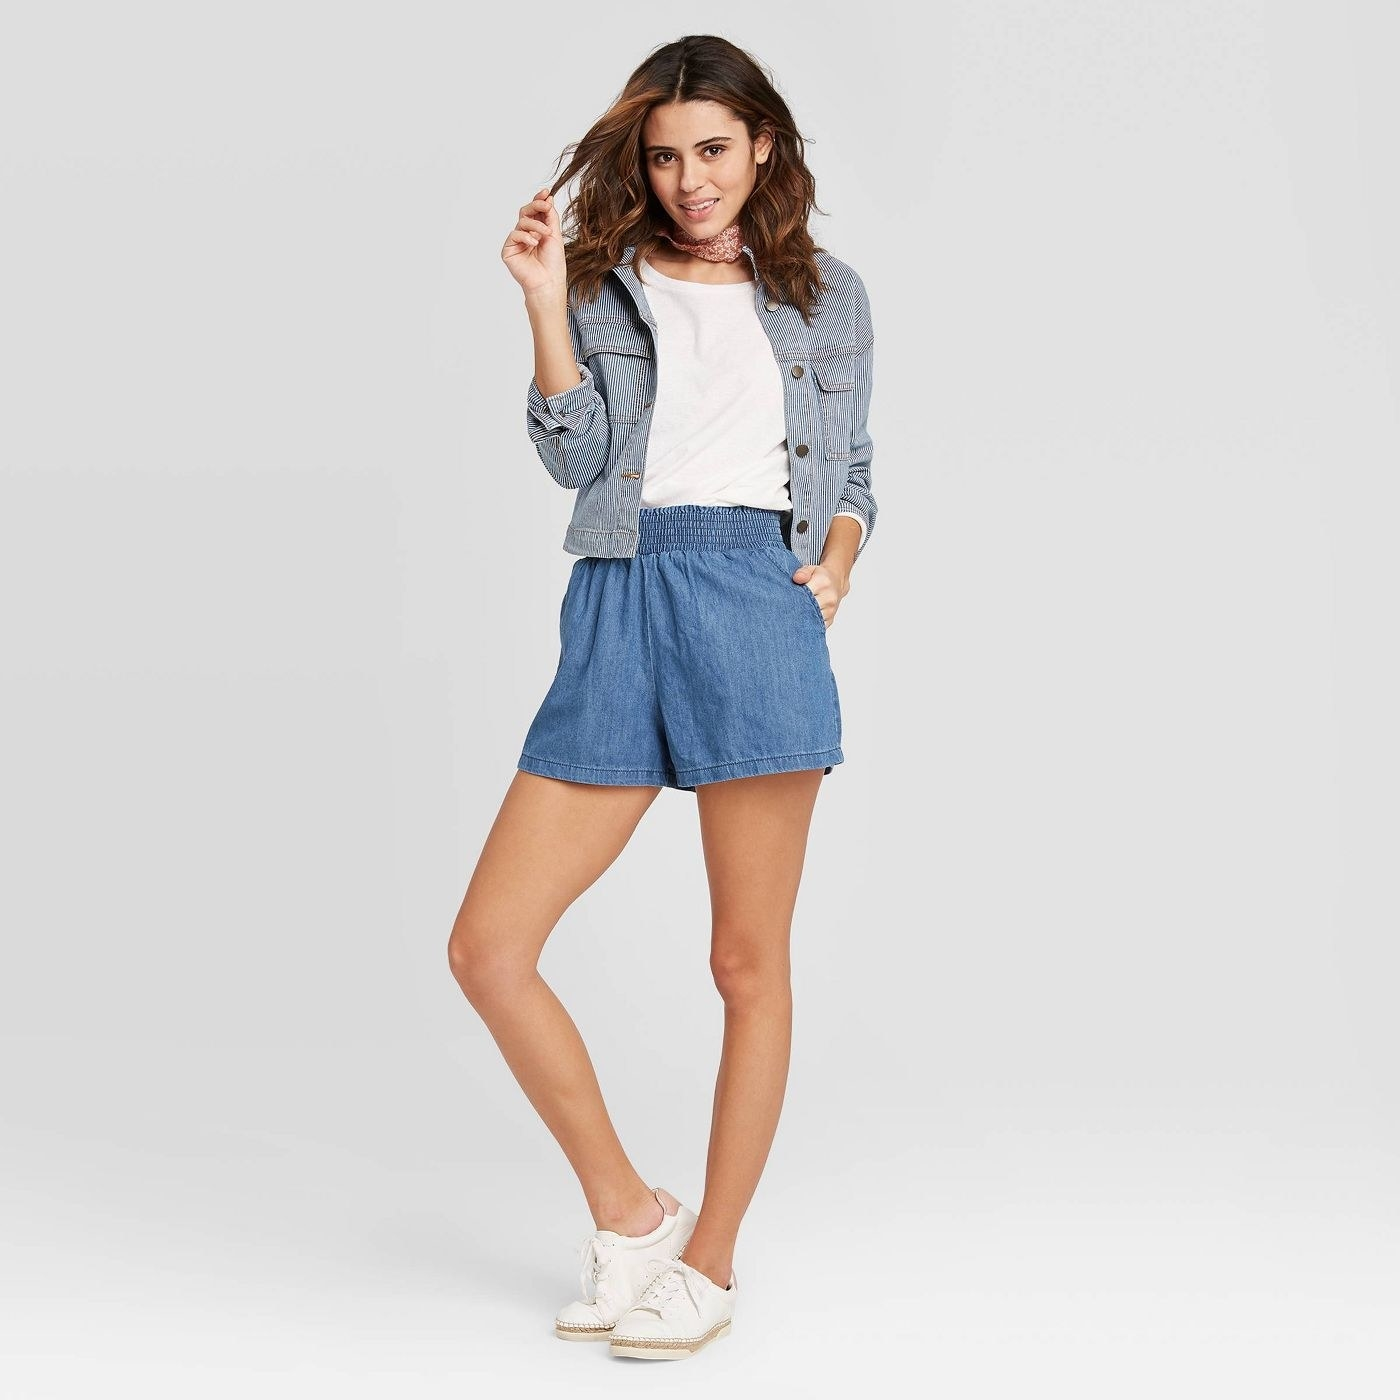 Model in pull-on denim shorts